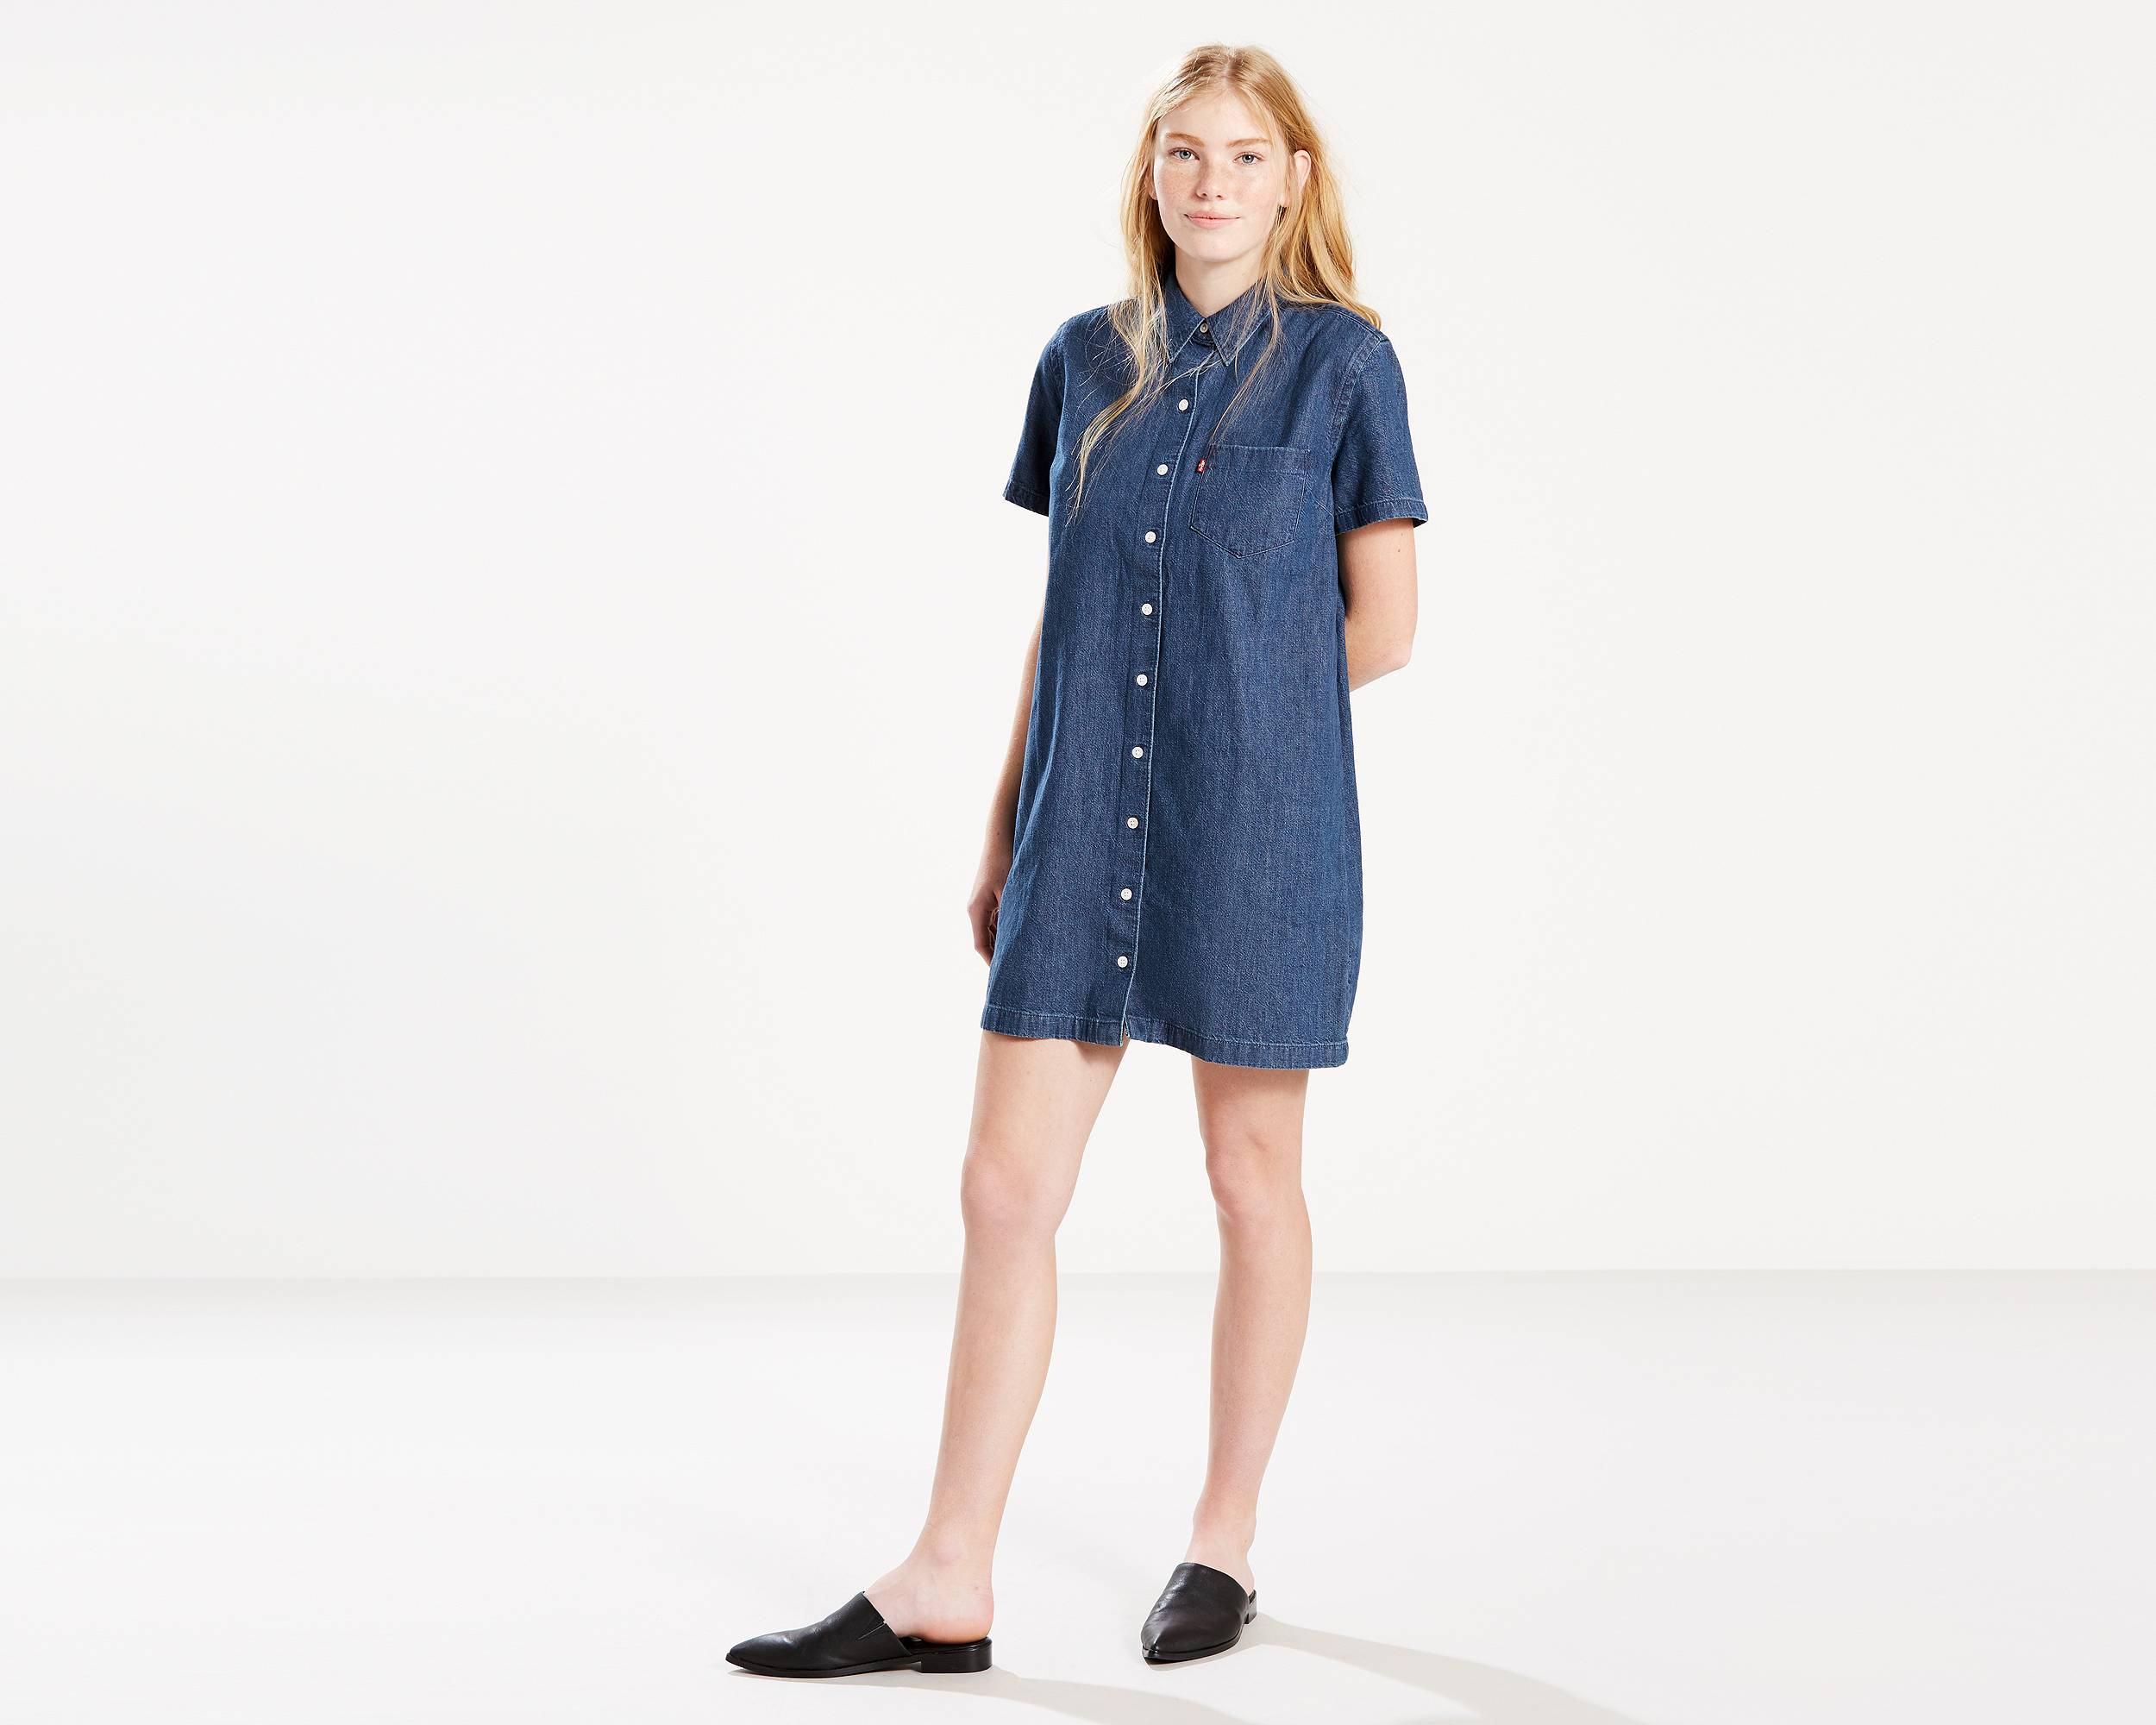 Denim Skirts & Dresses - Shop this Season's Jean Skirts | Levi's®